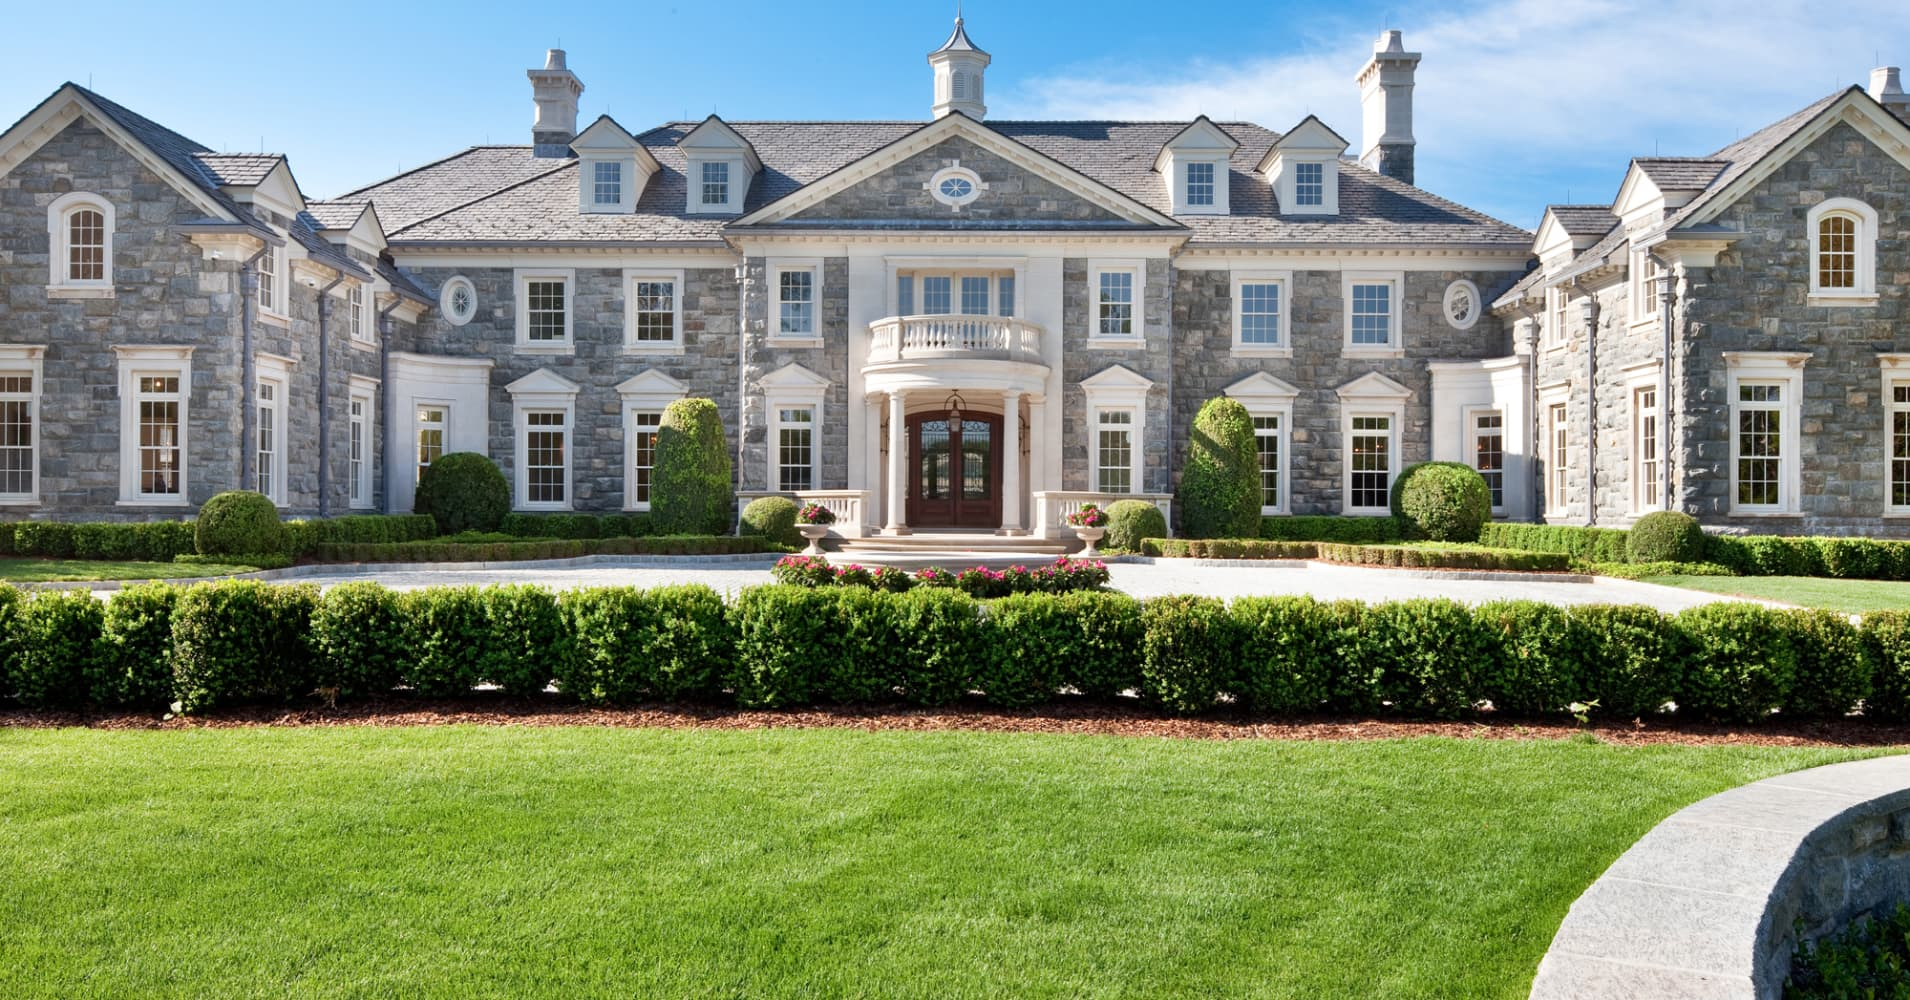 10 insane ways to pimp your megahome for Huge pretty houses